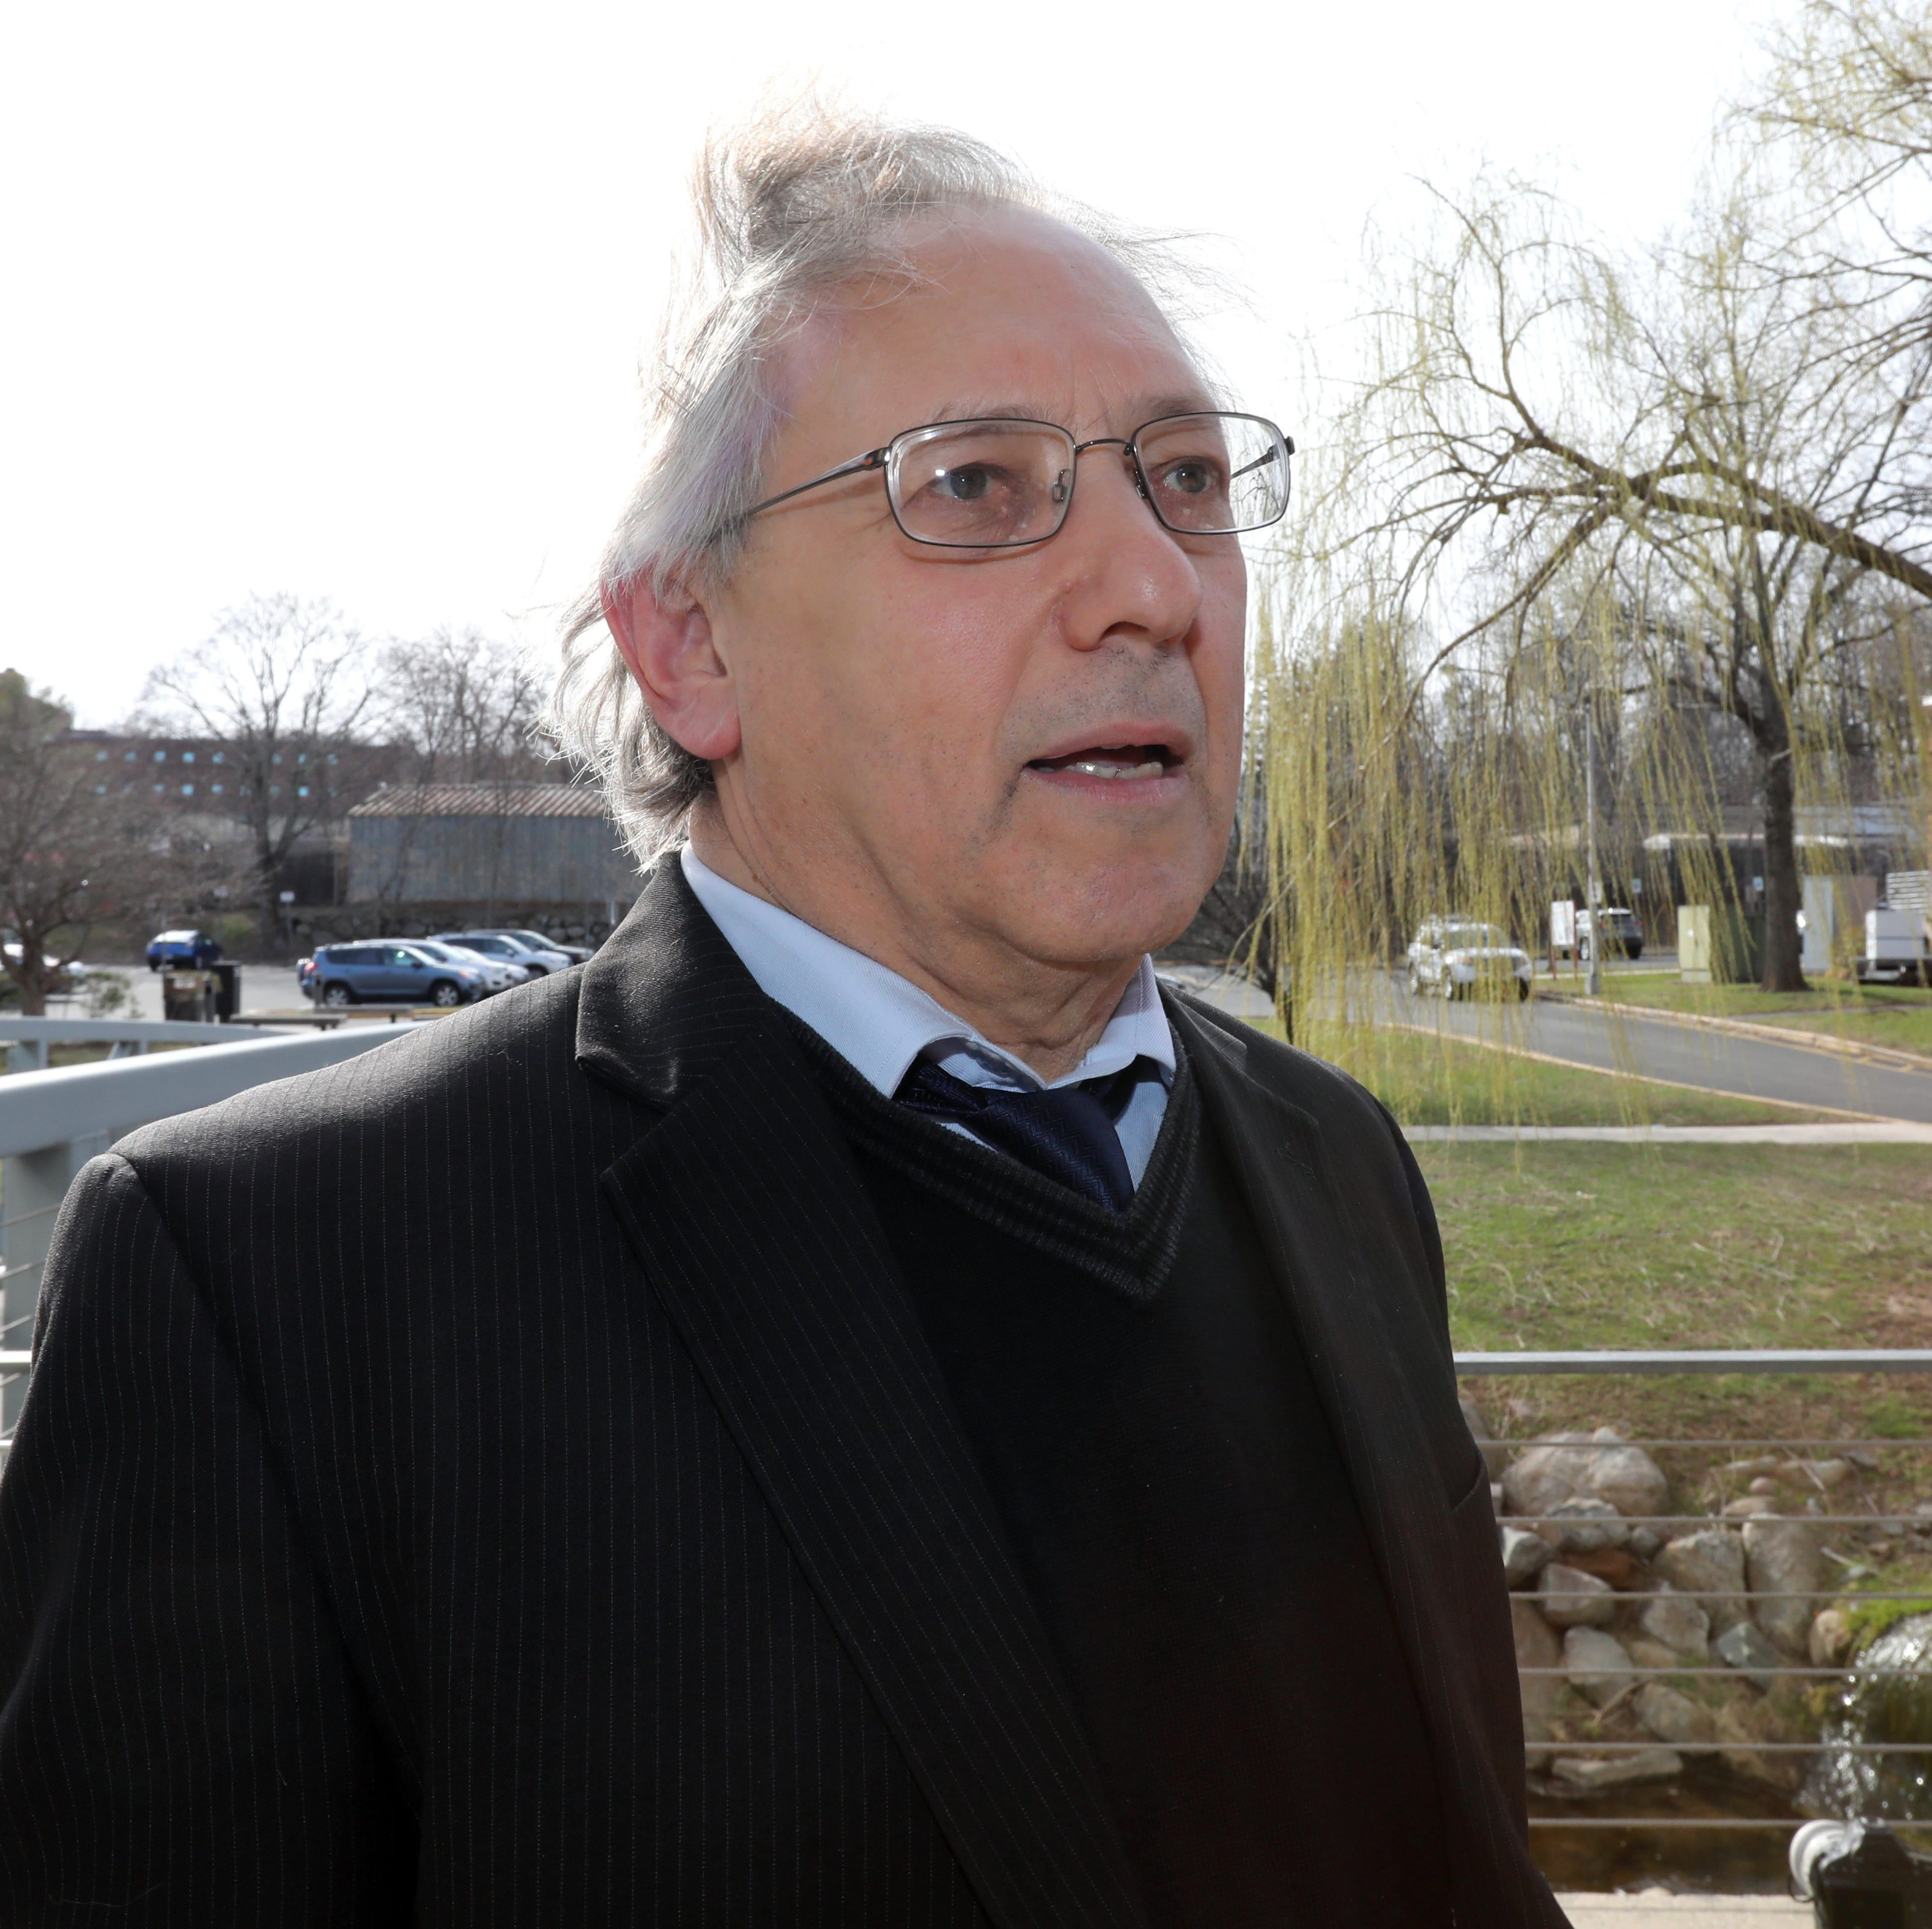 Measles outbreak: Michael Sussman, the man who beat Rockland's ban